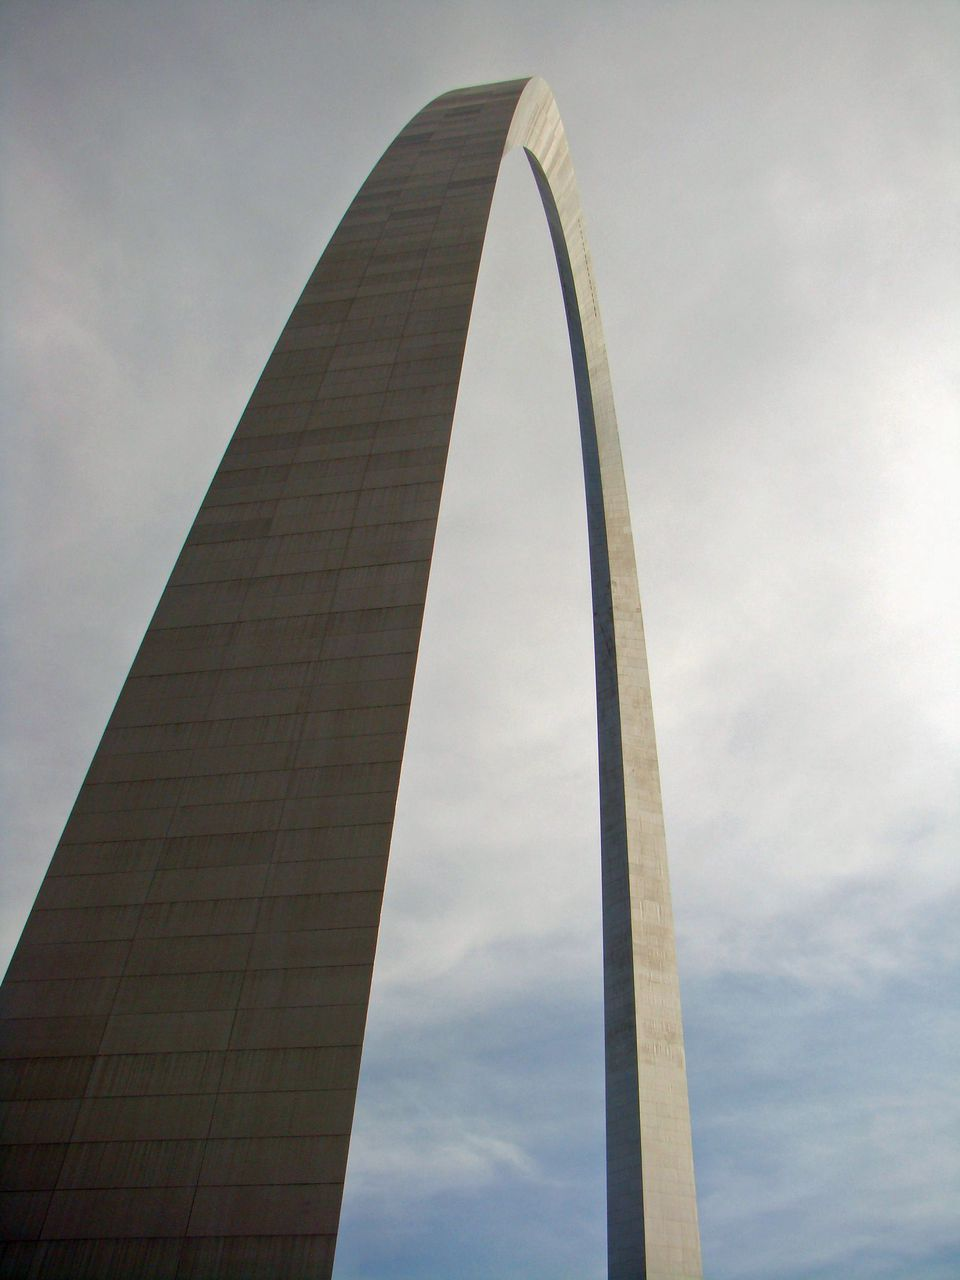 The Gateway Arch is an iconic symbol of St. Louis.